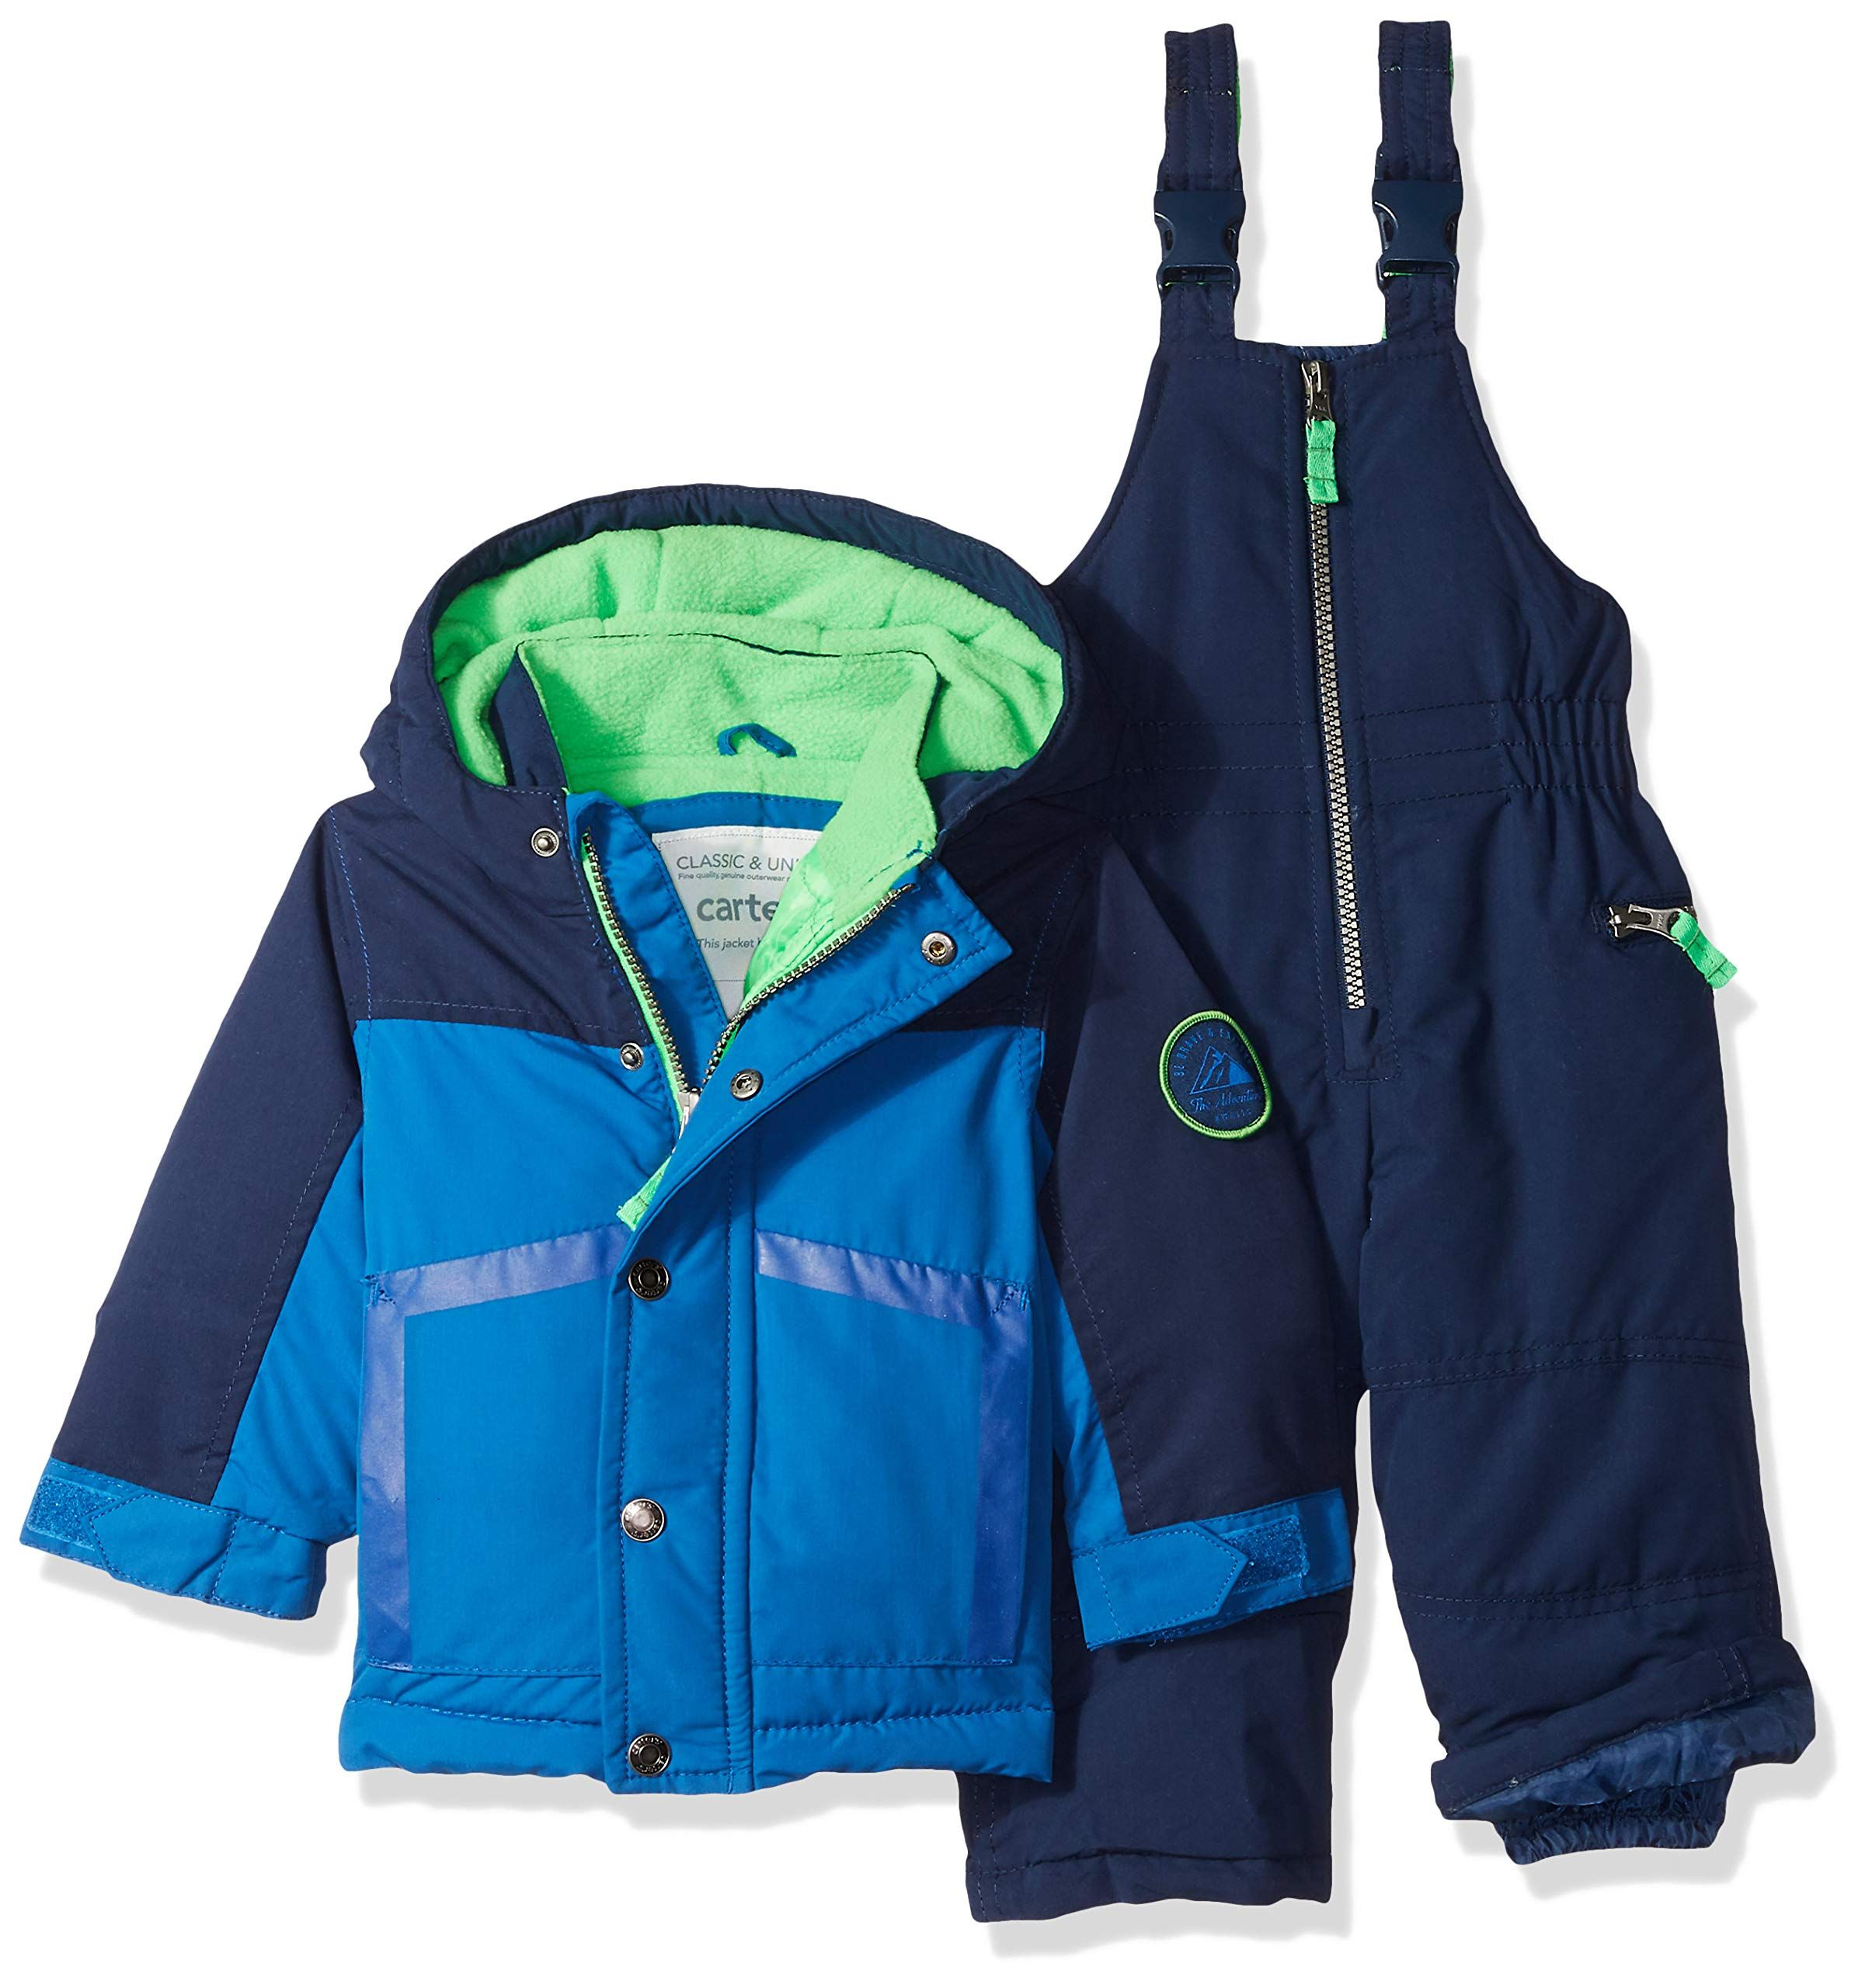 53931a512761 Carters Baby Boys Heavyweight 2Piece Skisuit Snowsuit House Blue ...